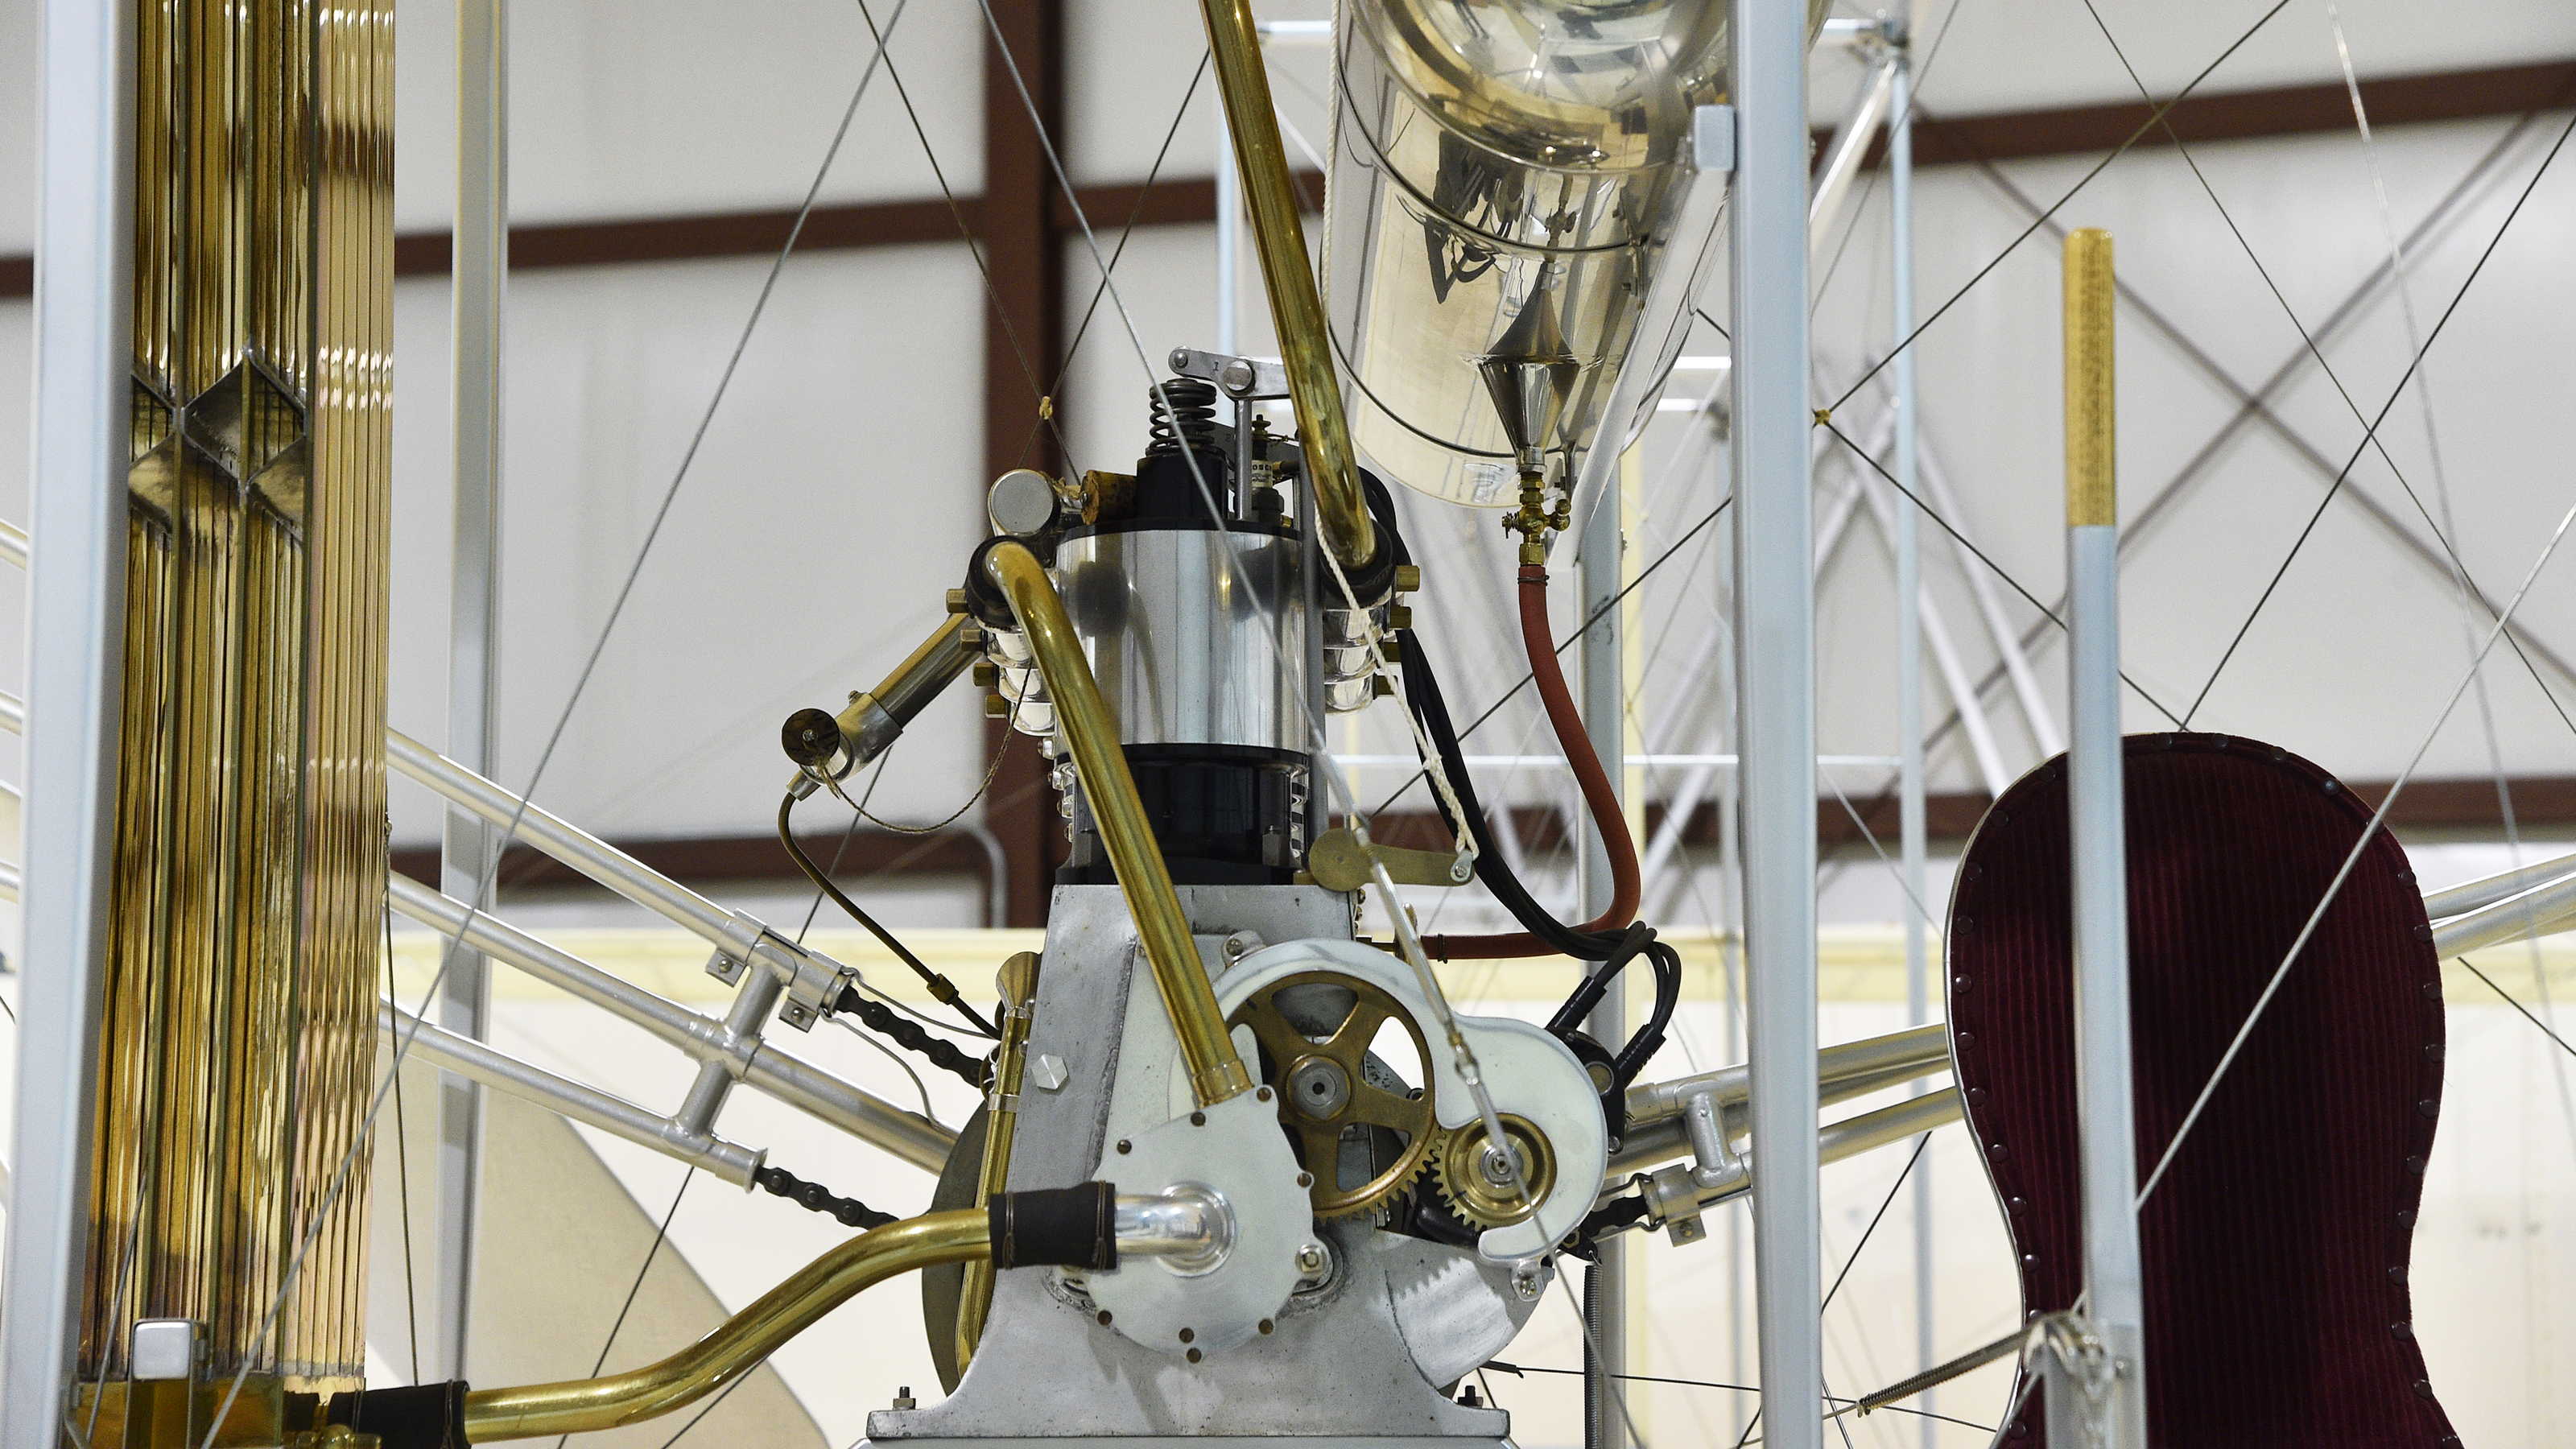 Silver paint helps disguise a wing strut and its attachment fittings on a 1911 Wright Flyer Model B aircraft re-created by The Wright Experience's Ken Hyde and team. Photo by David Tulis.